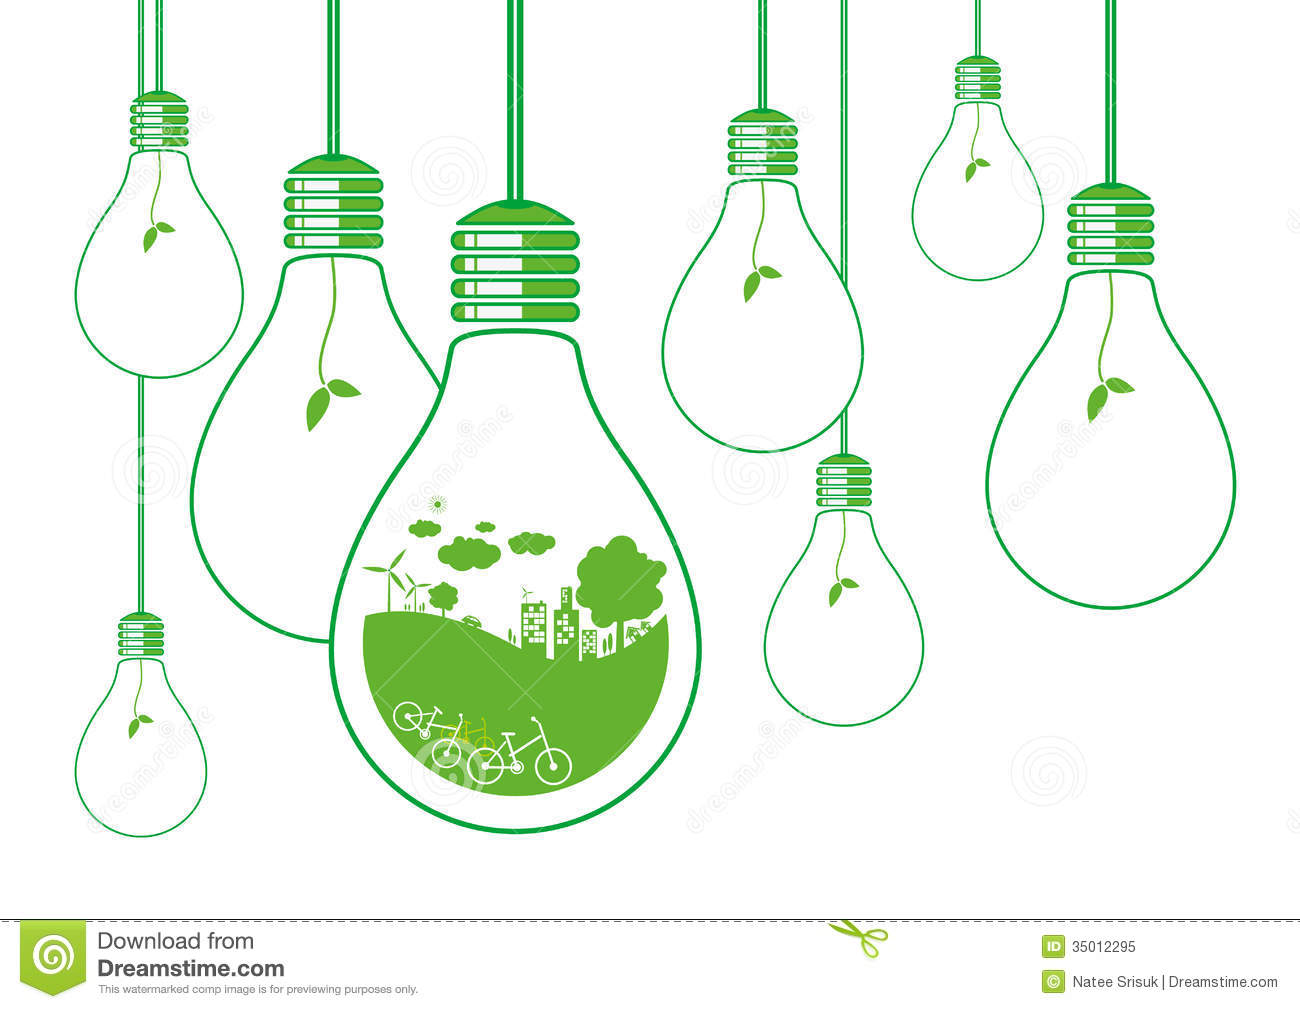 Ecology Concept Stock Vector. Illustration Of Light, Idea